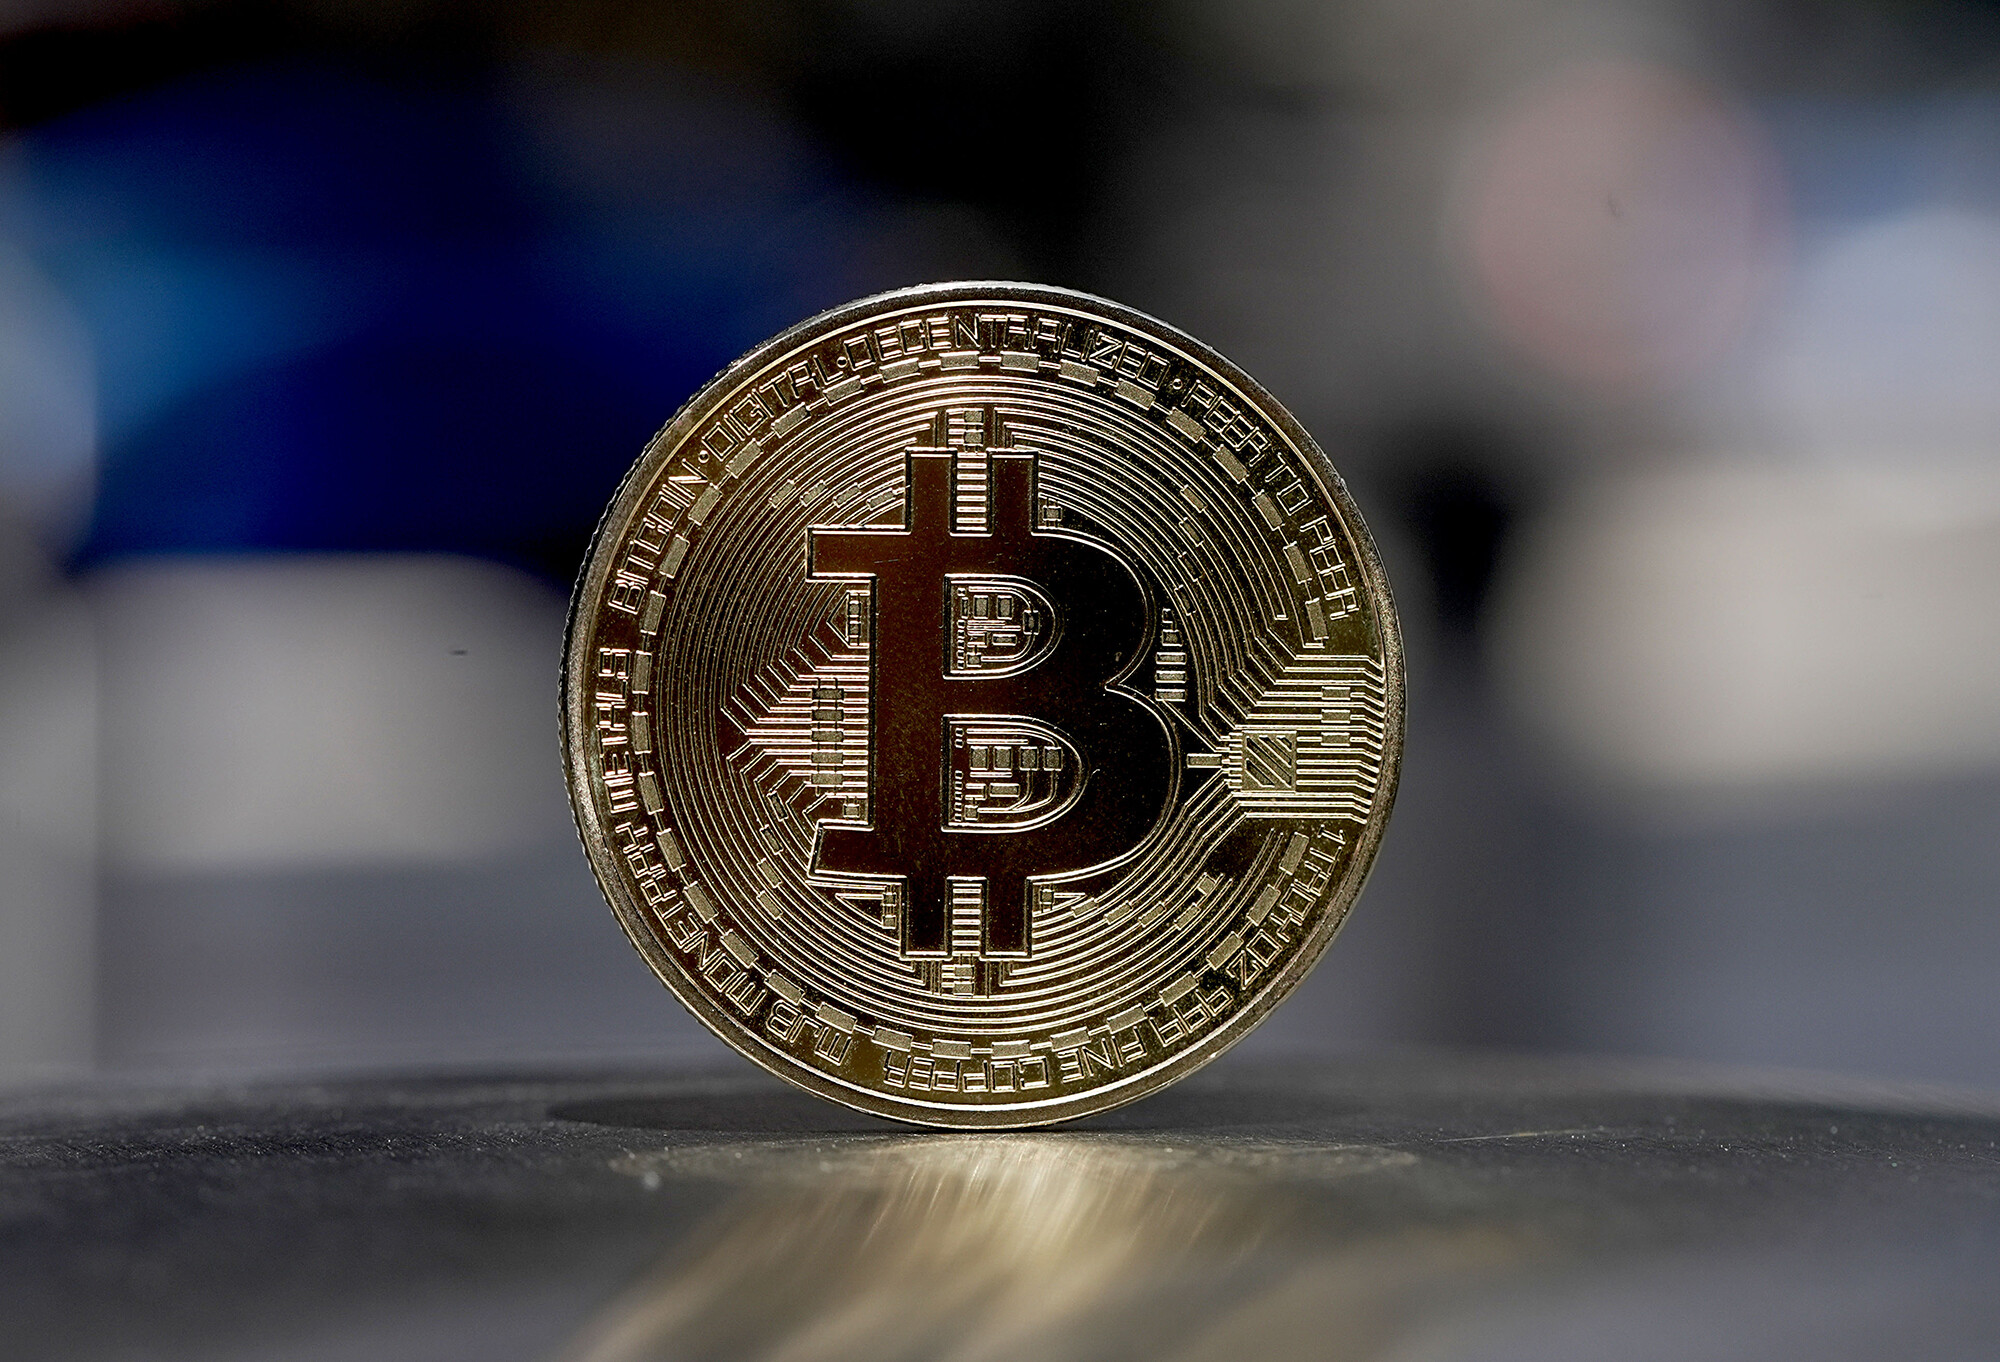 Bitcoin surges to new record above $66,000